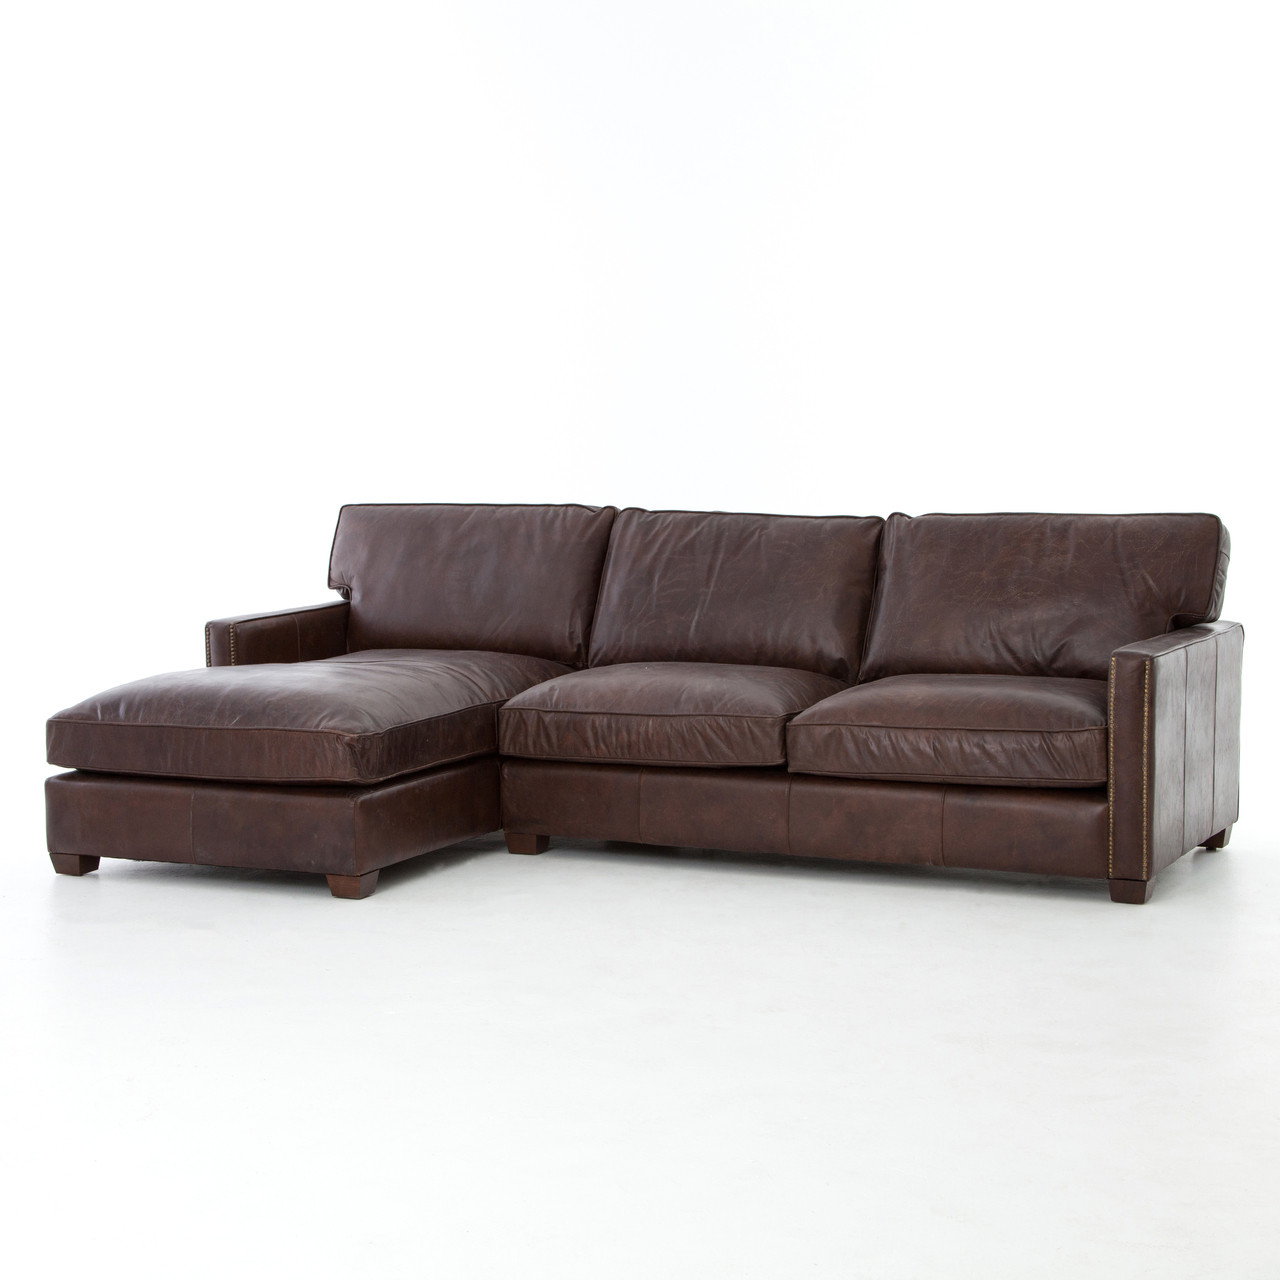 larkin vintage cigar leather sectional sofa with chaise. Black Bedroom Furniture Sets. Home Design Ideas